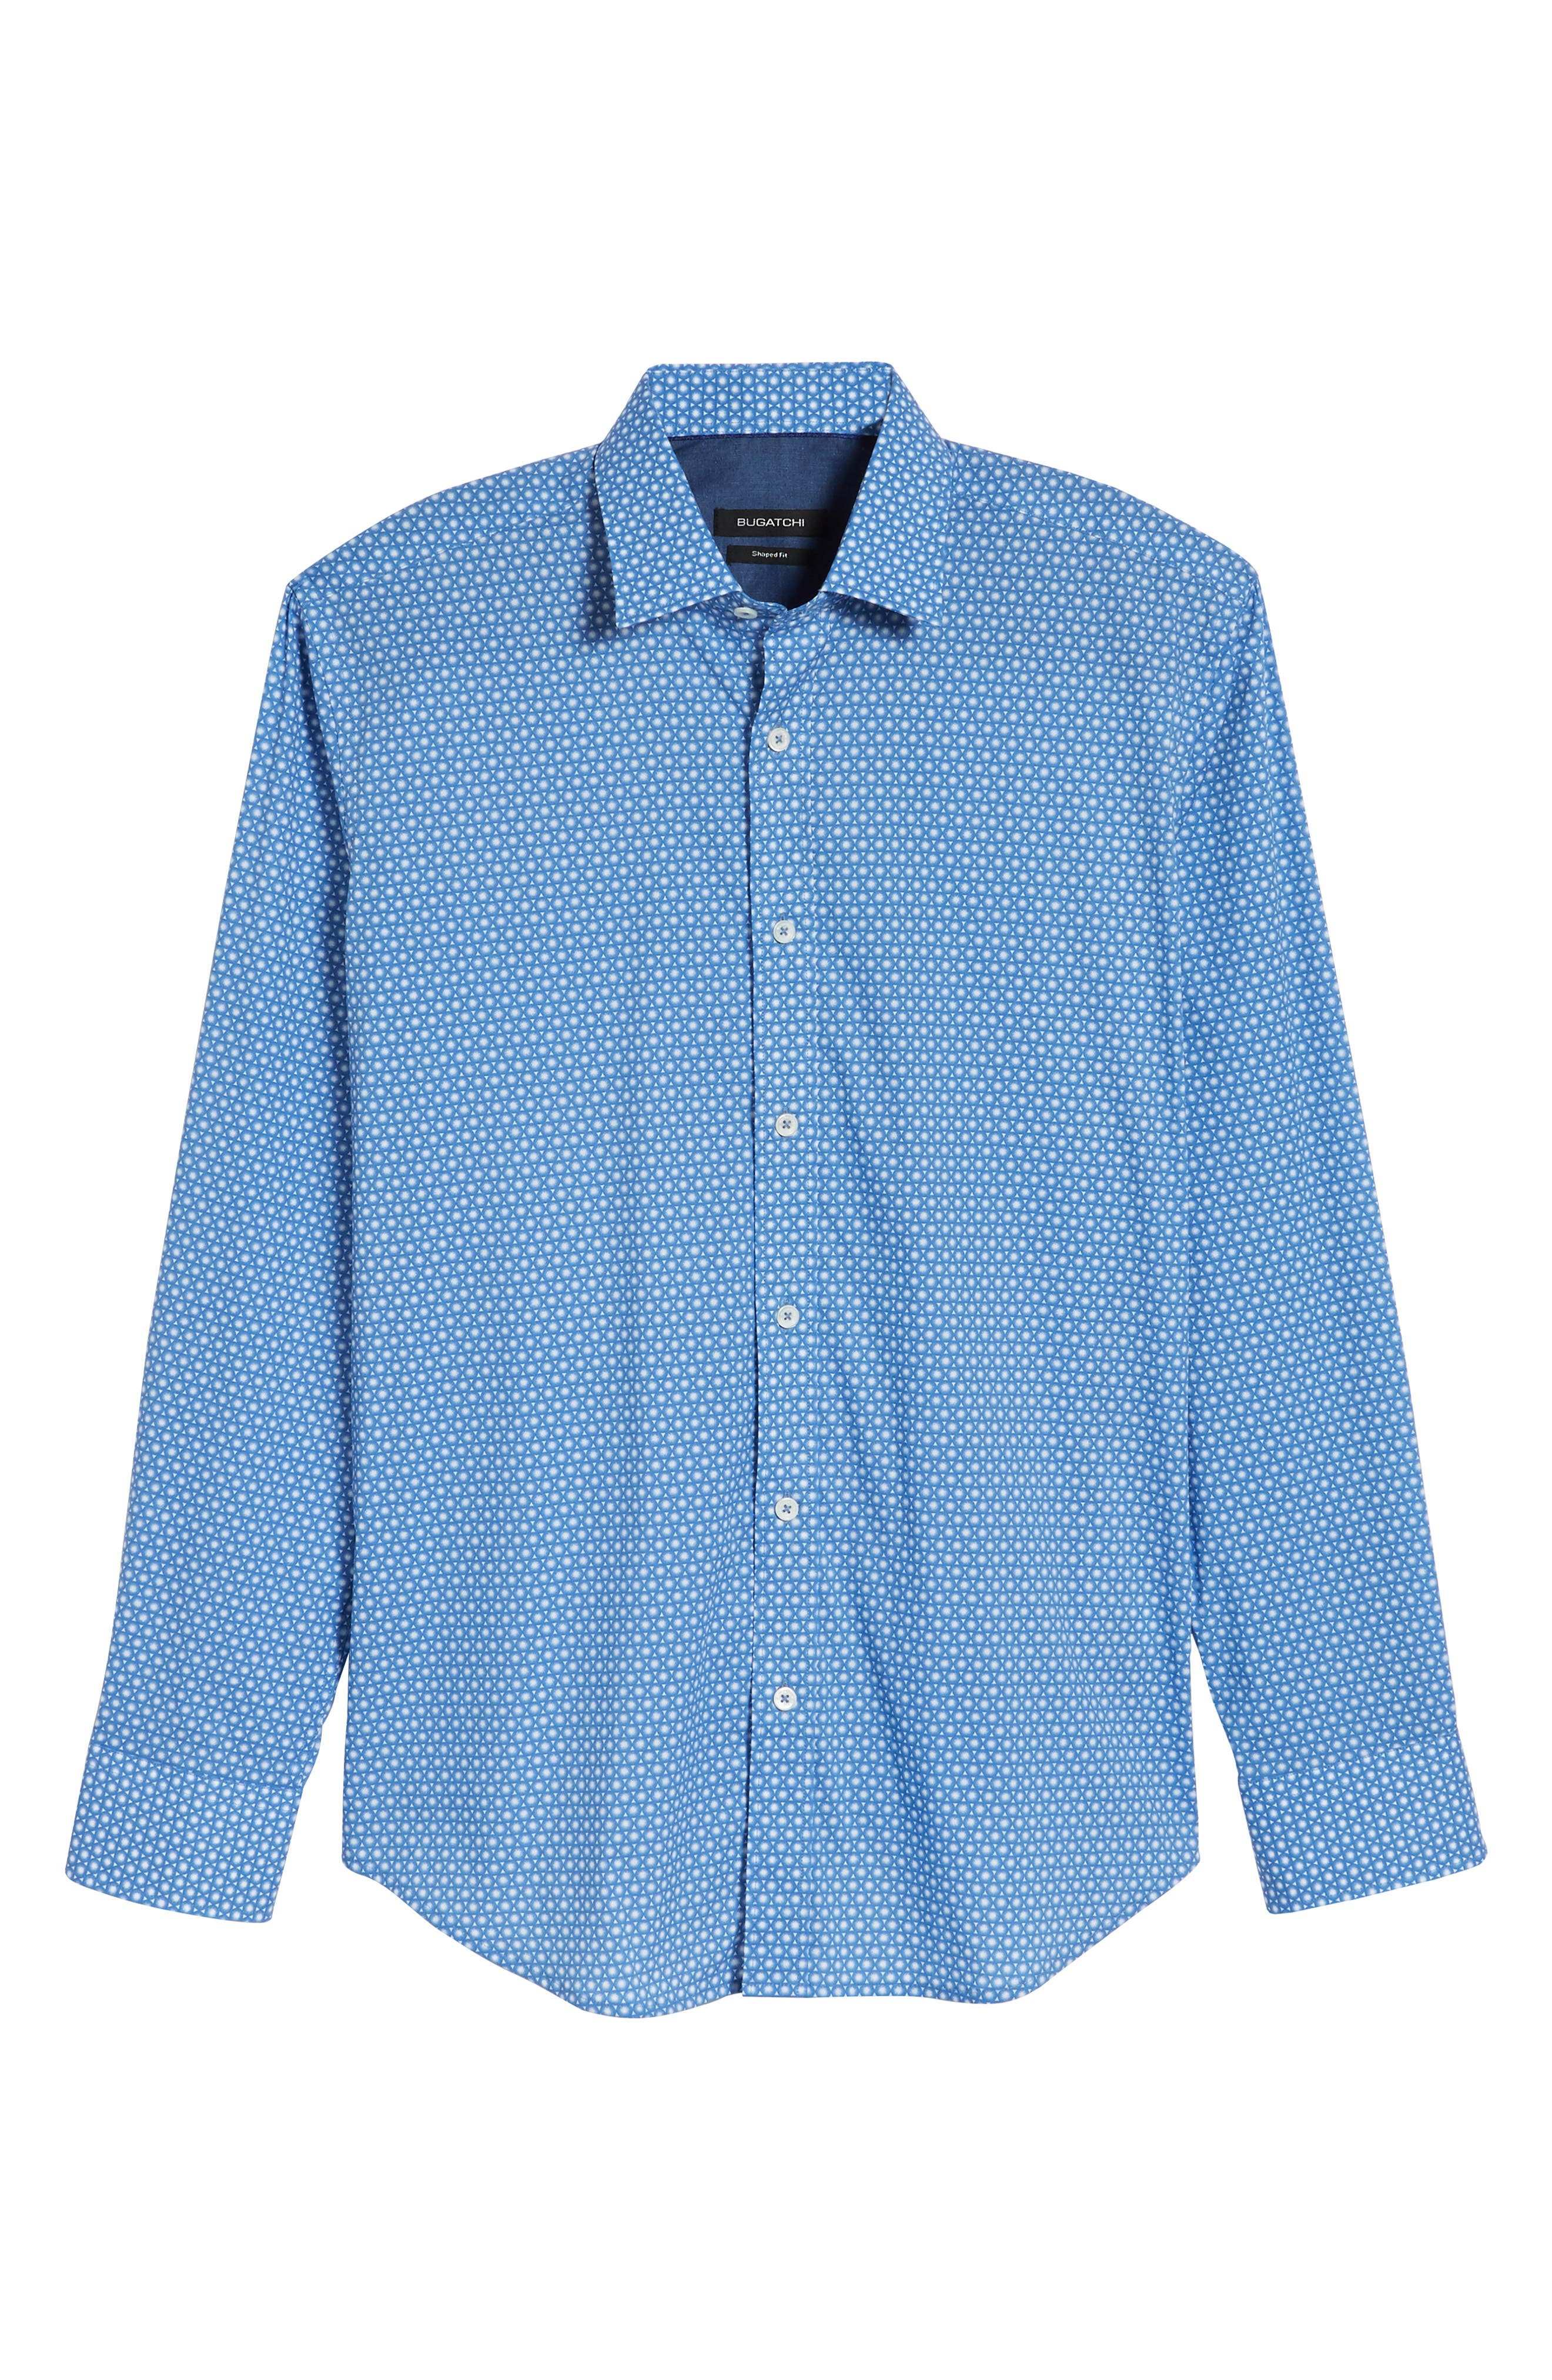 Shaped Fit Circle Print Sport Shirt,                             Alternate thumbnail 6, color,                             Classic Blue